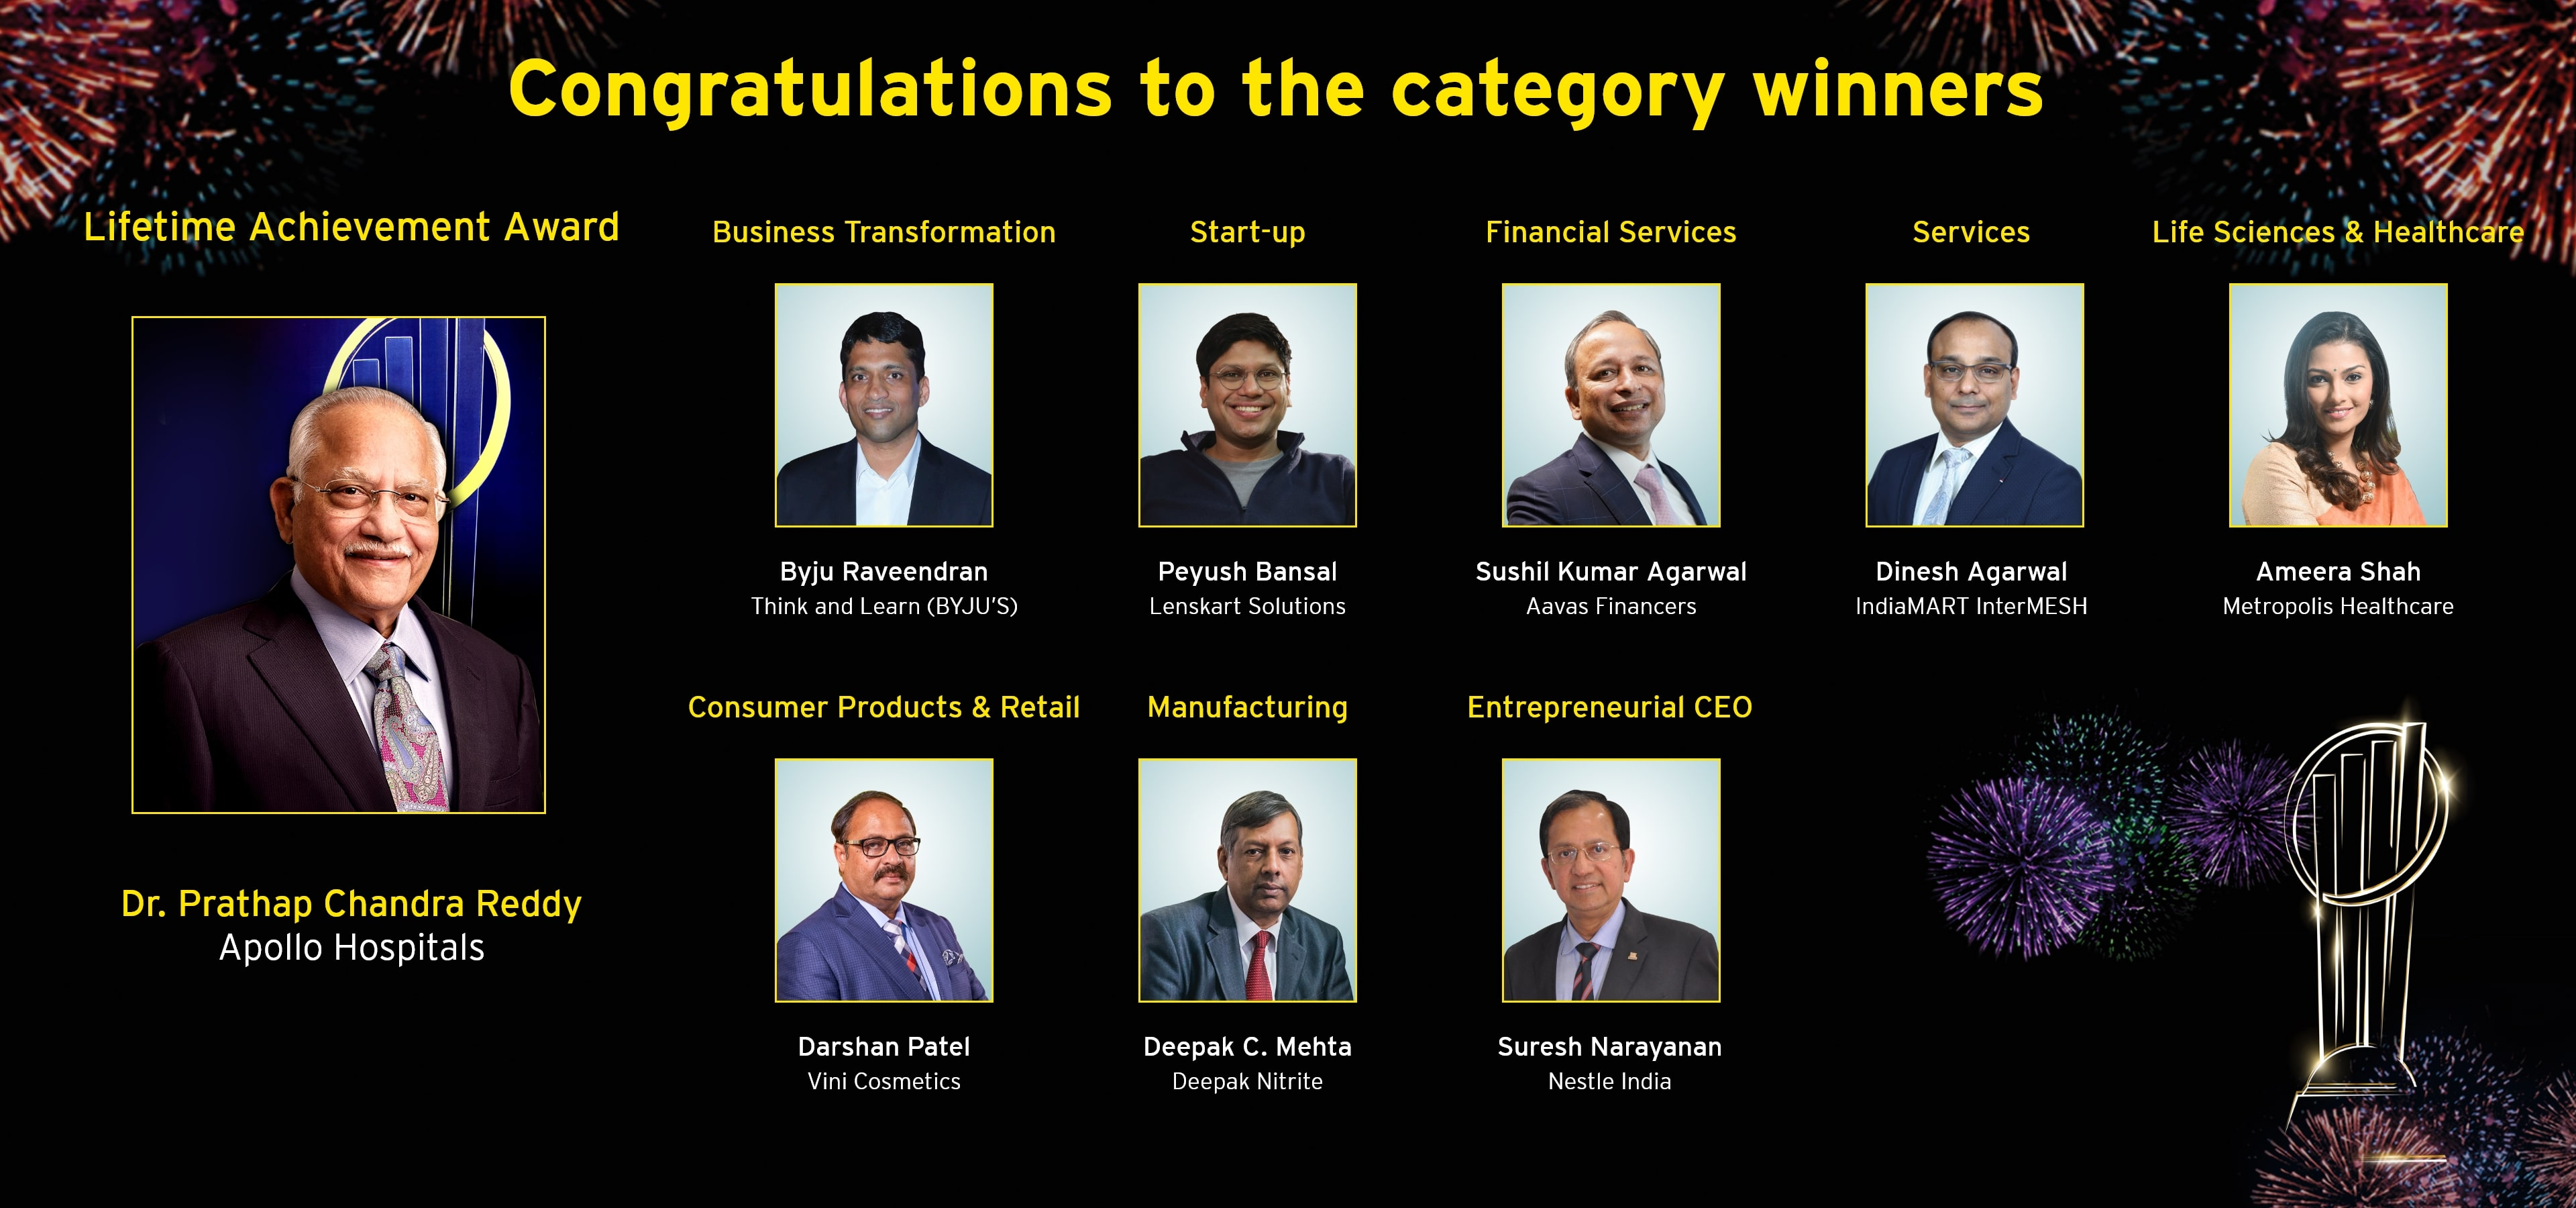 Congratulations to the category winners